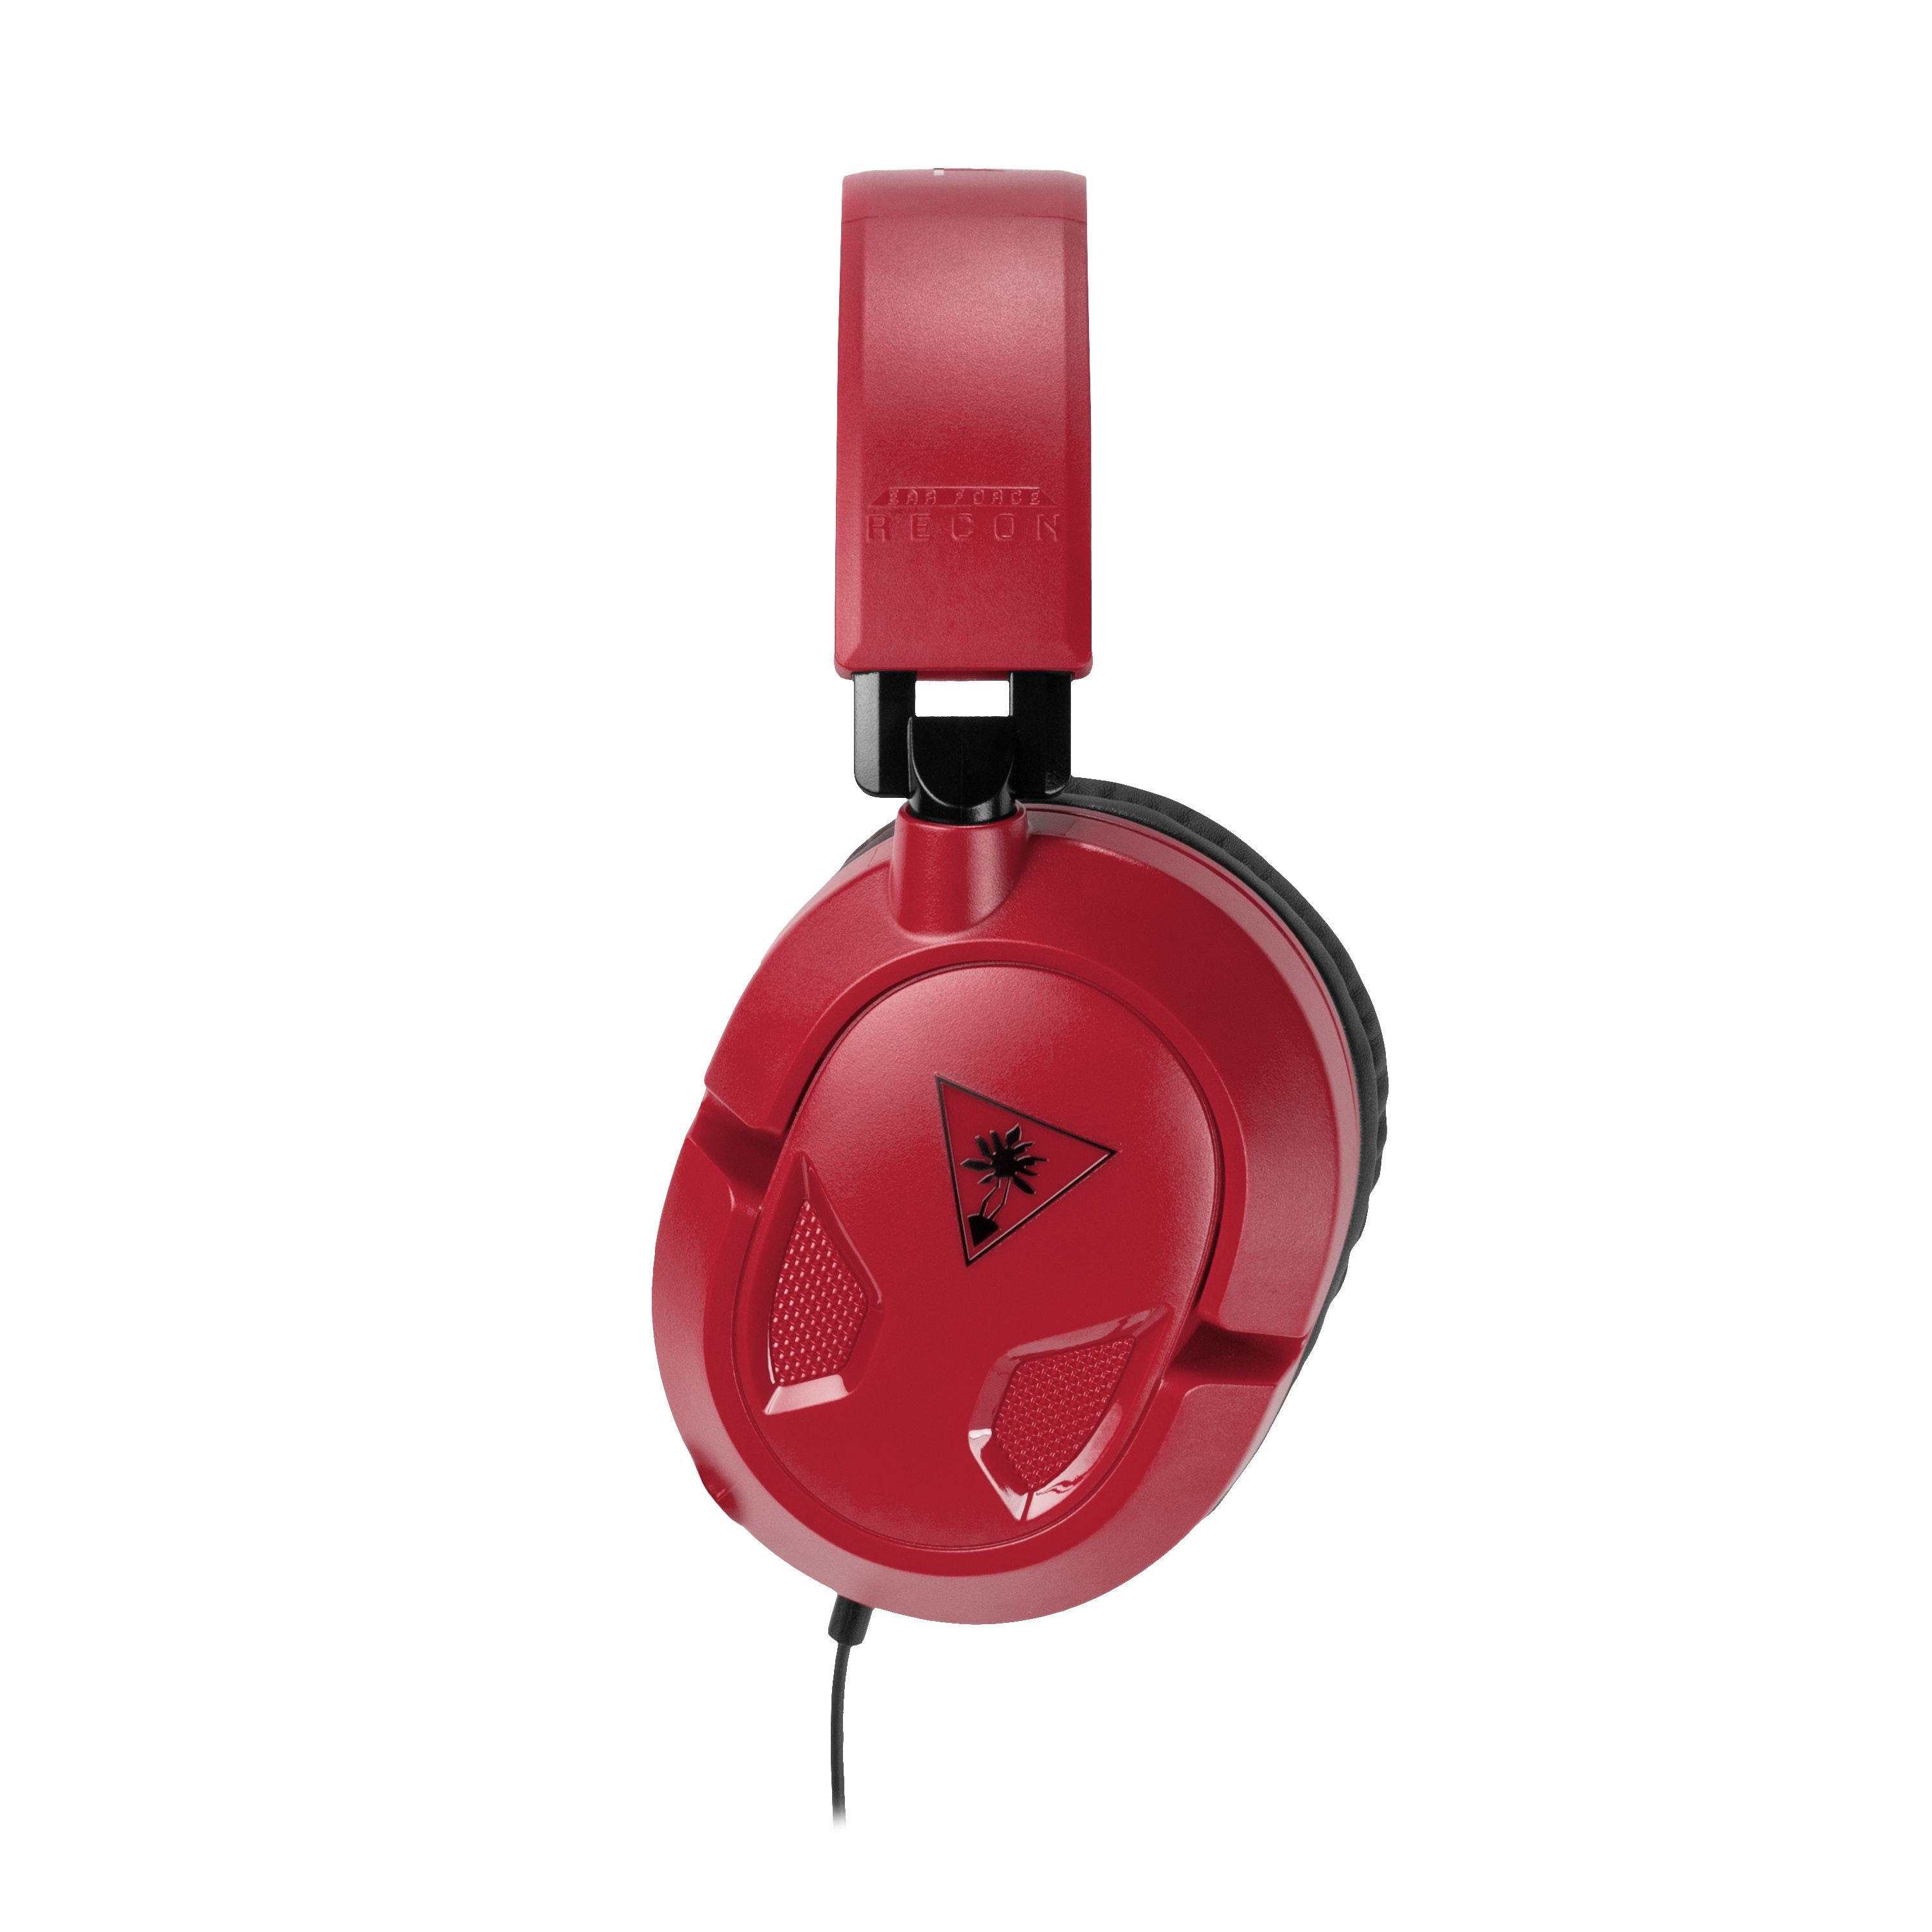 Turtle Beach Recon 50p Headset Red Walmart Exclusive Ps4 Xbox One Pc Mobile Headset Red Turtle Xbox One Pc Xbox One Turtle Beach